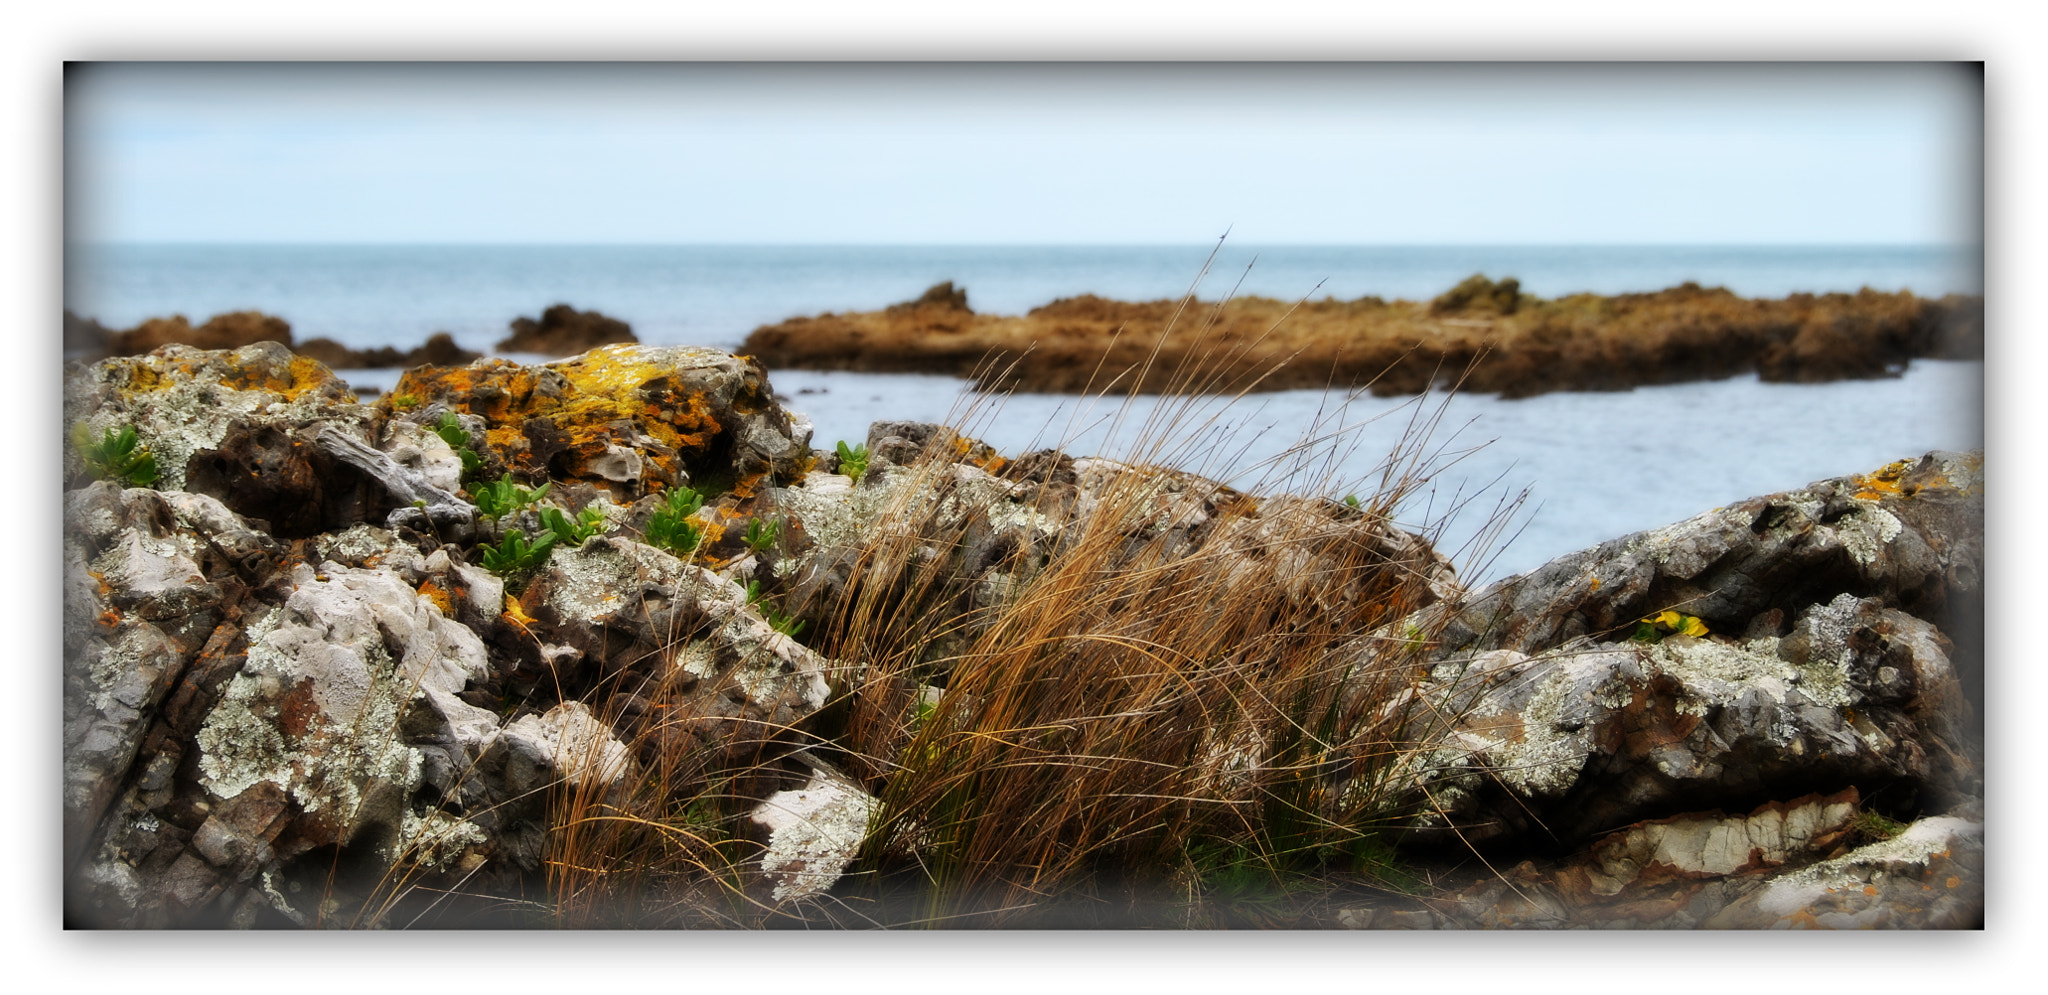 Photograph A Shore Thing by Gerard Hermans on 500px